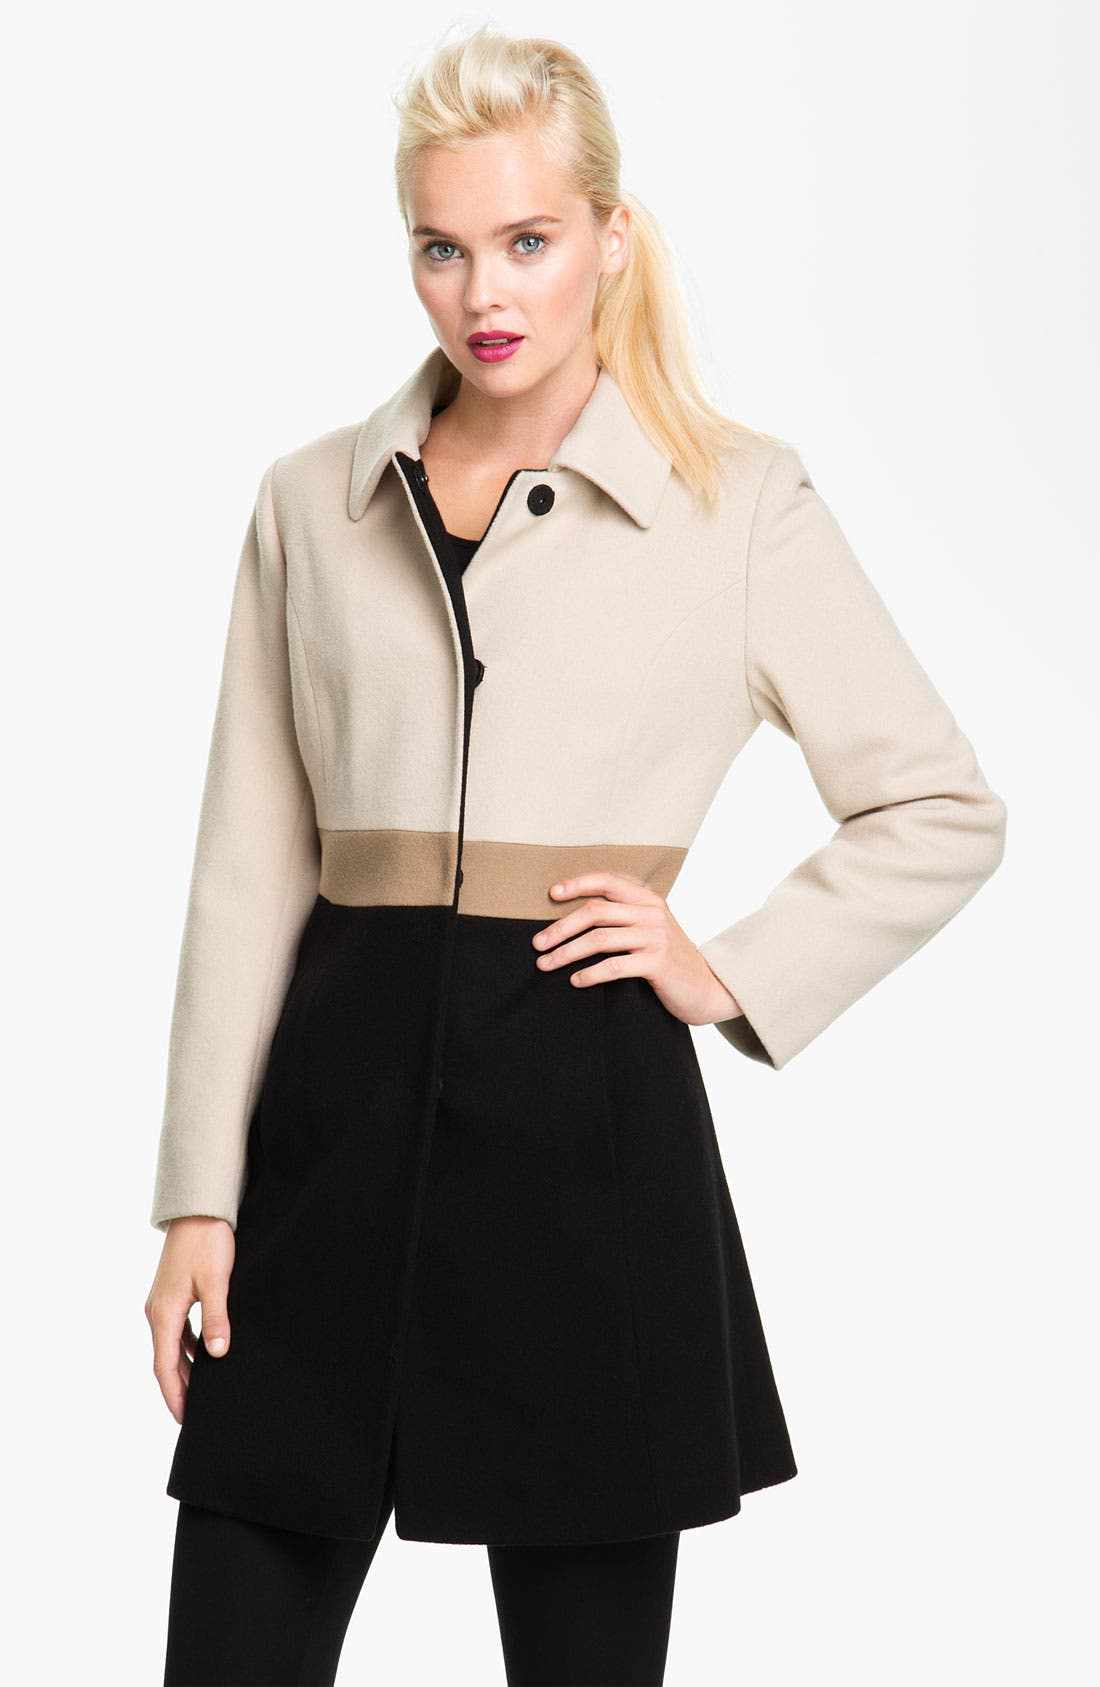 Alternate Image 1 Selected - Fleurette Colorblock Wool Walking Coat (Petite)